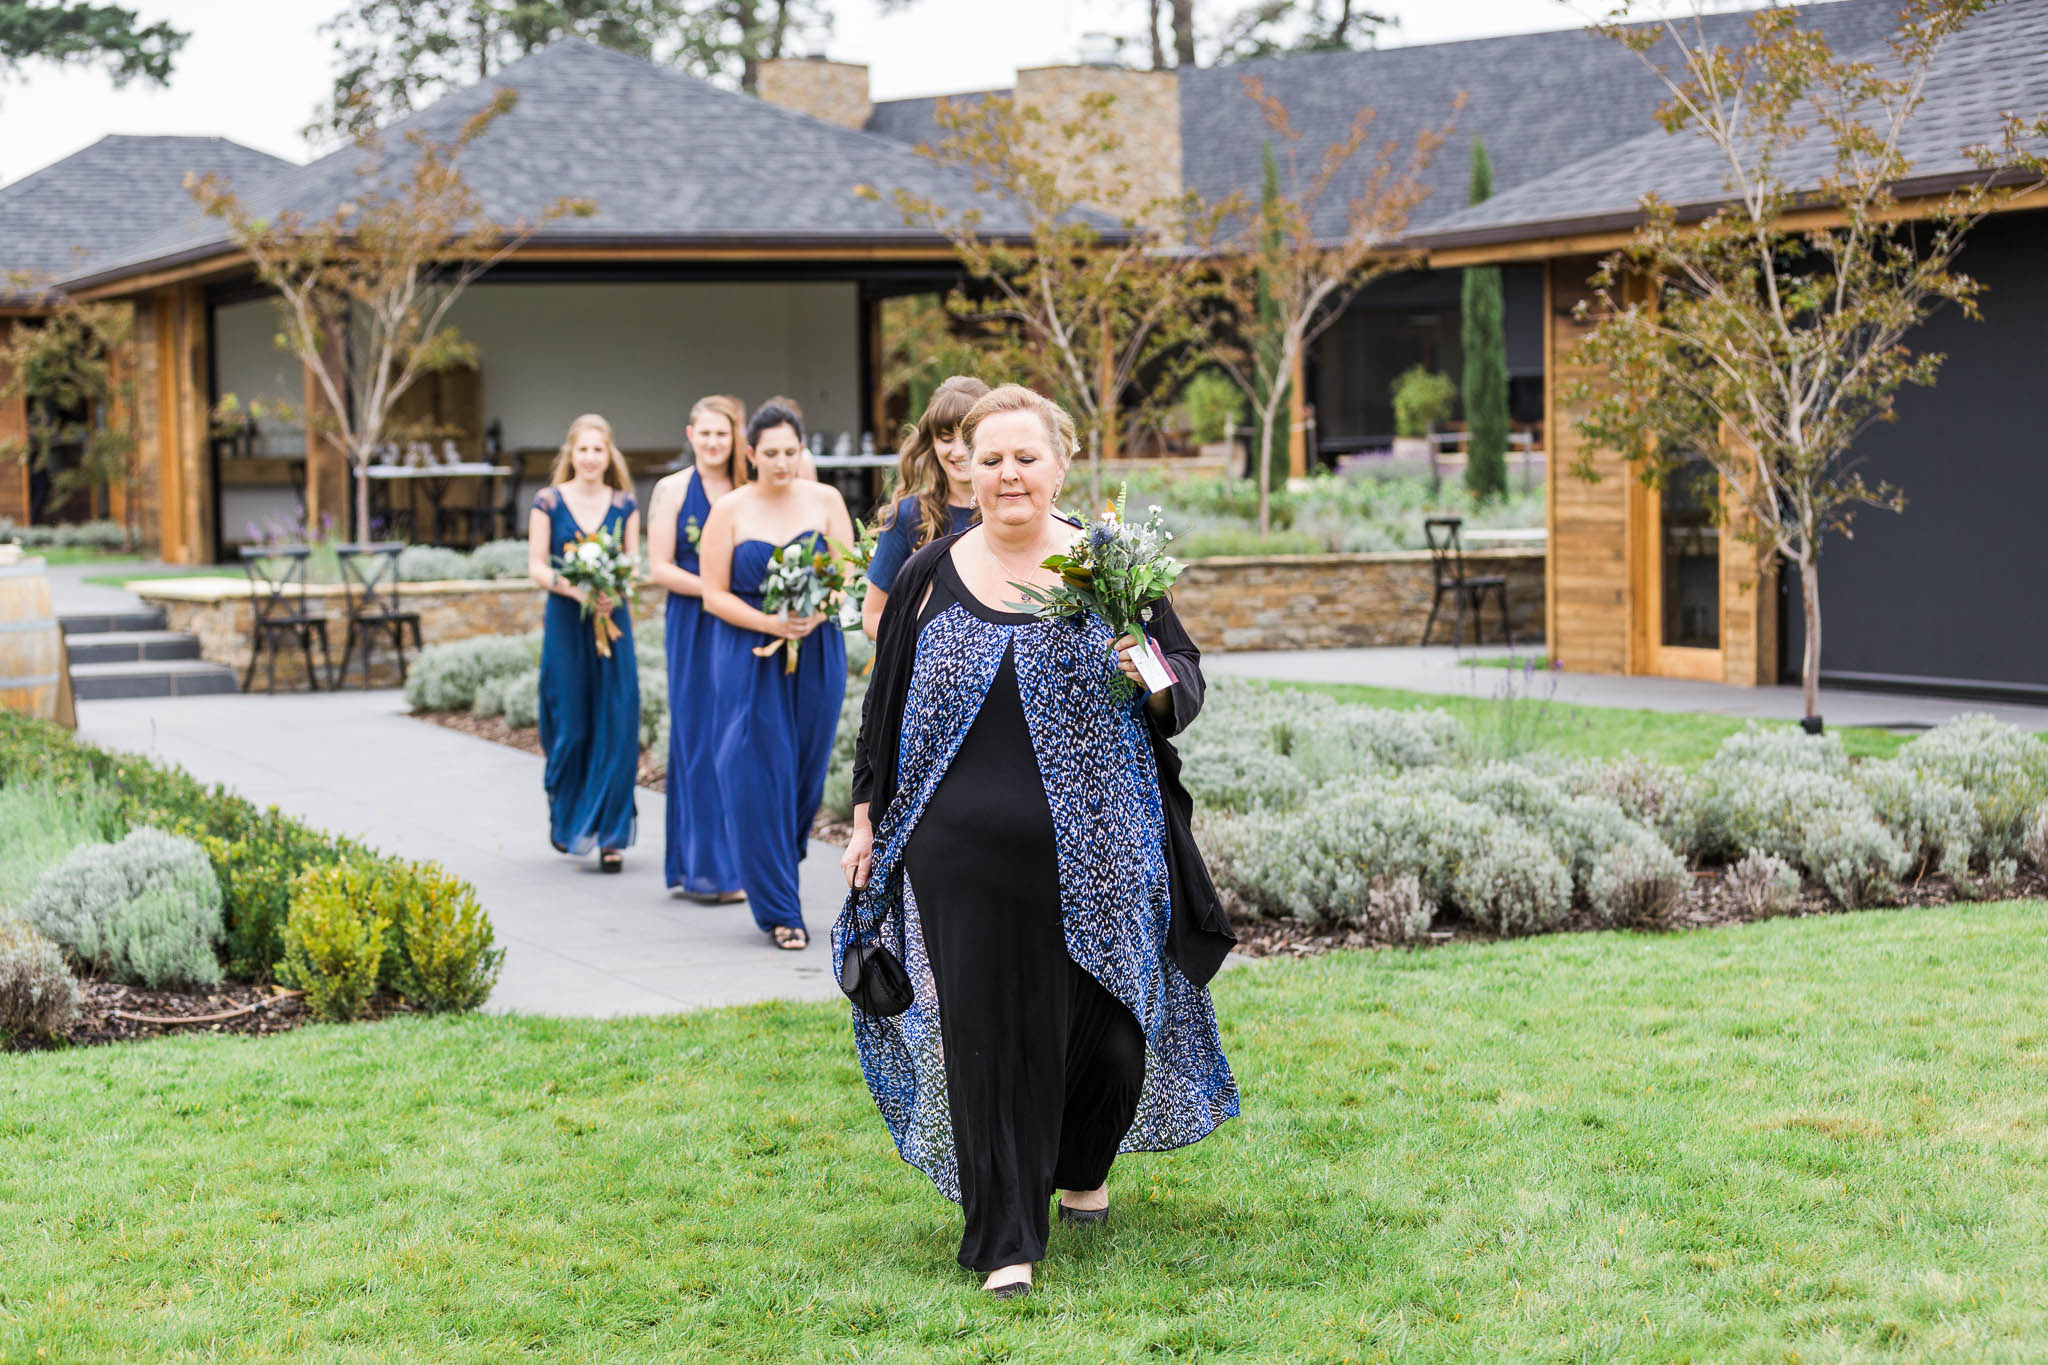 Bridesmaids walking towards ceremony at Pialligo Estate Wedding